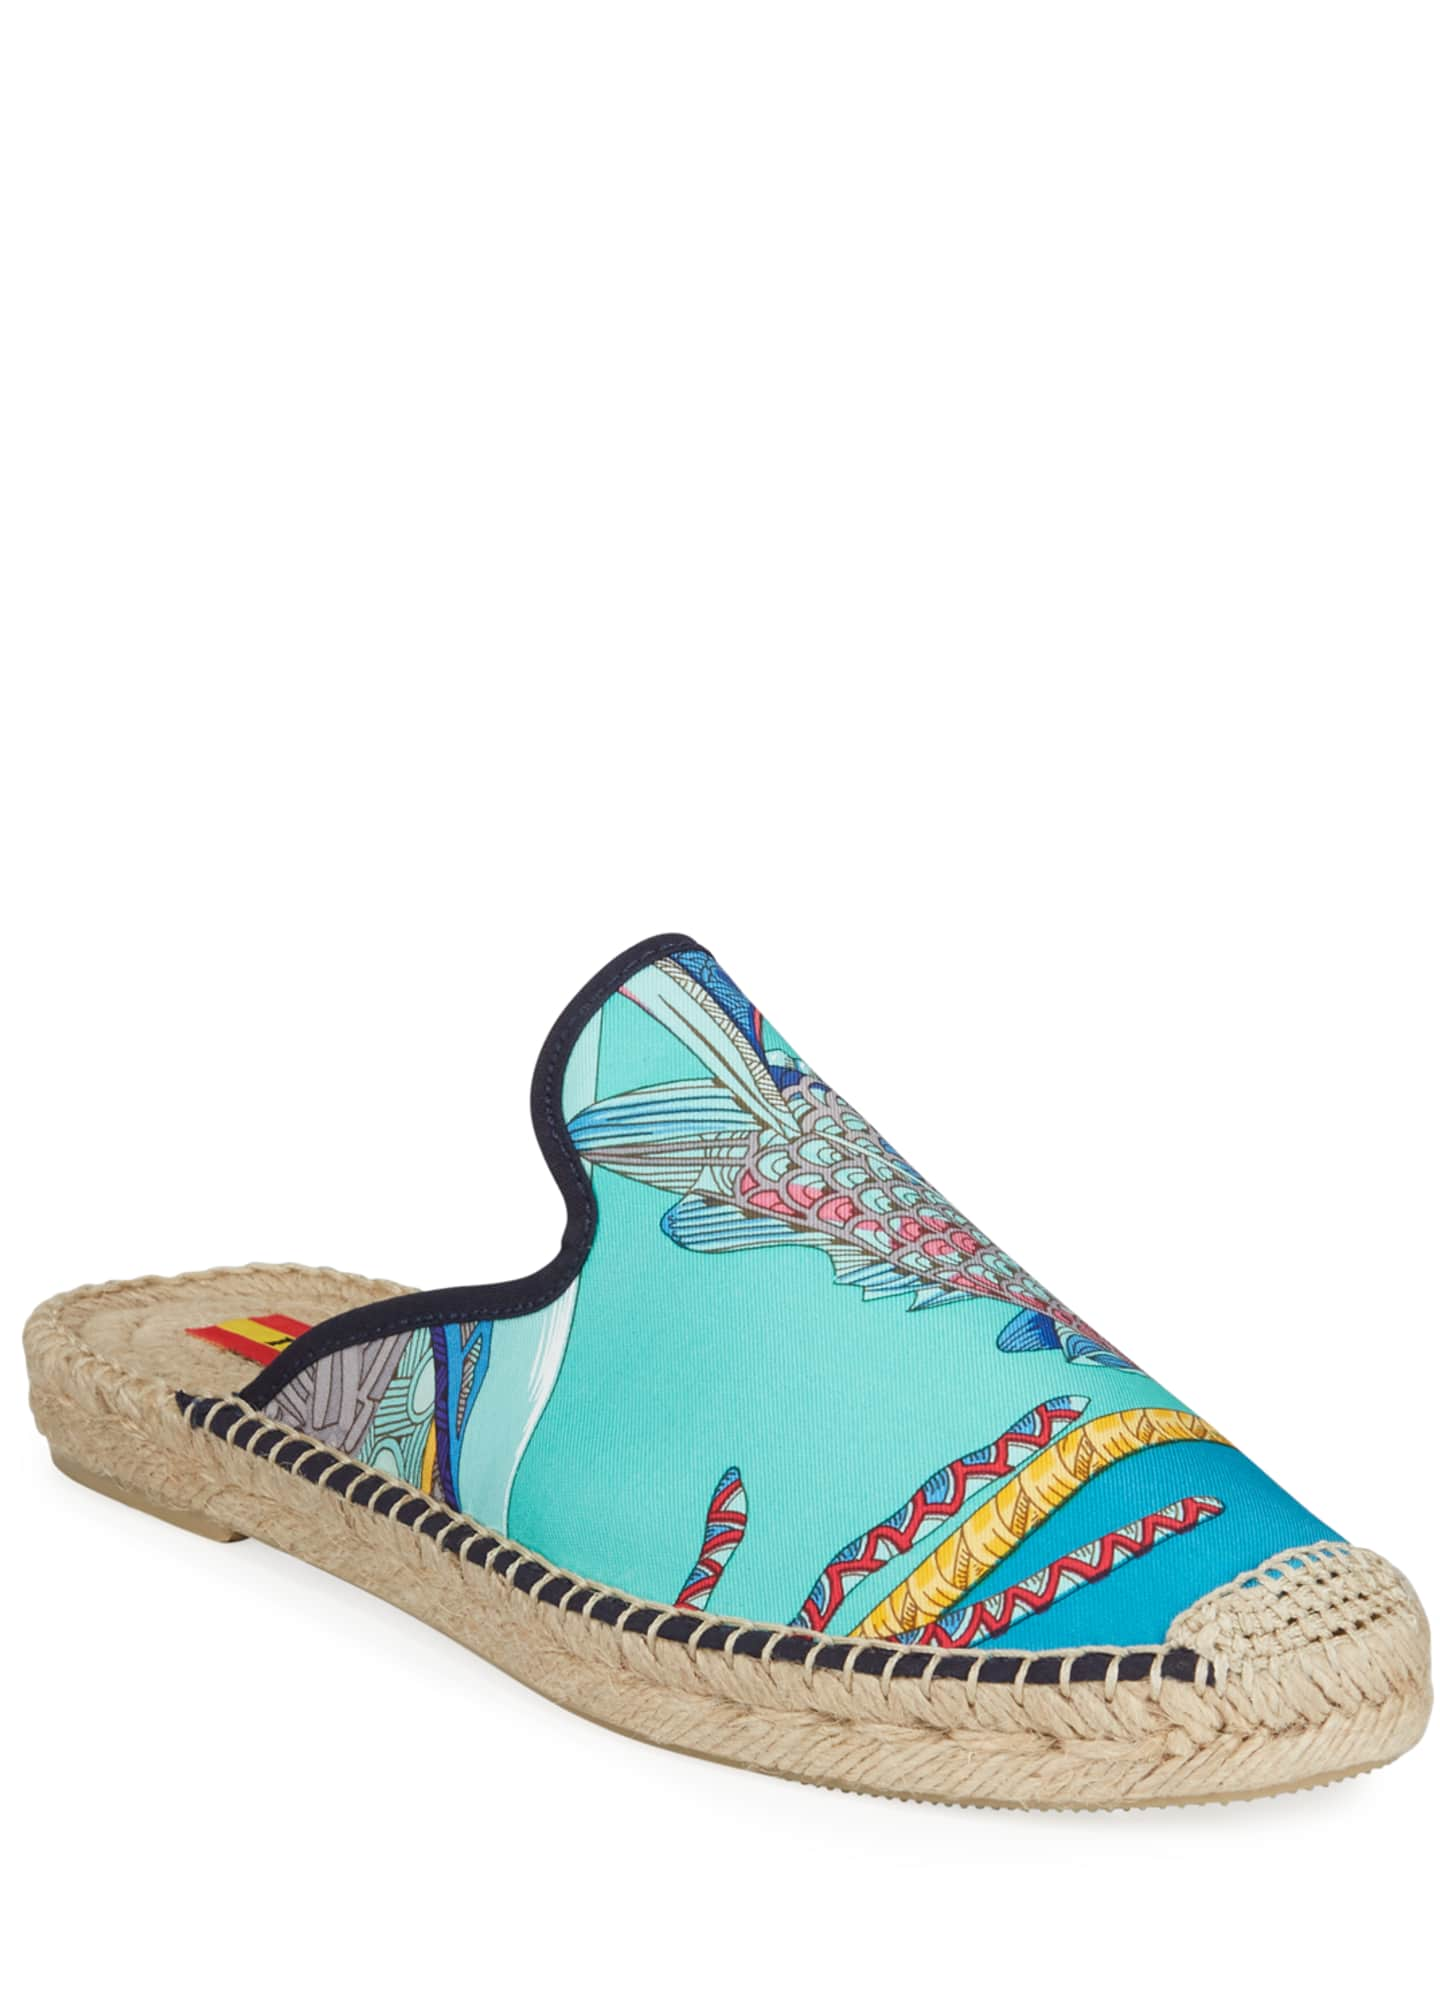 Respoke Galo Hermes Flat Espadrille Mules